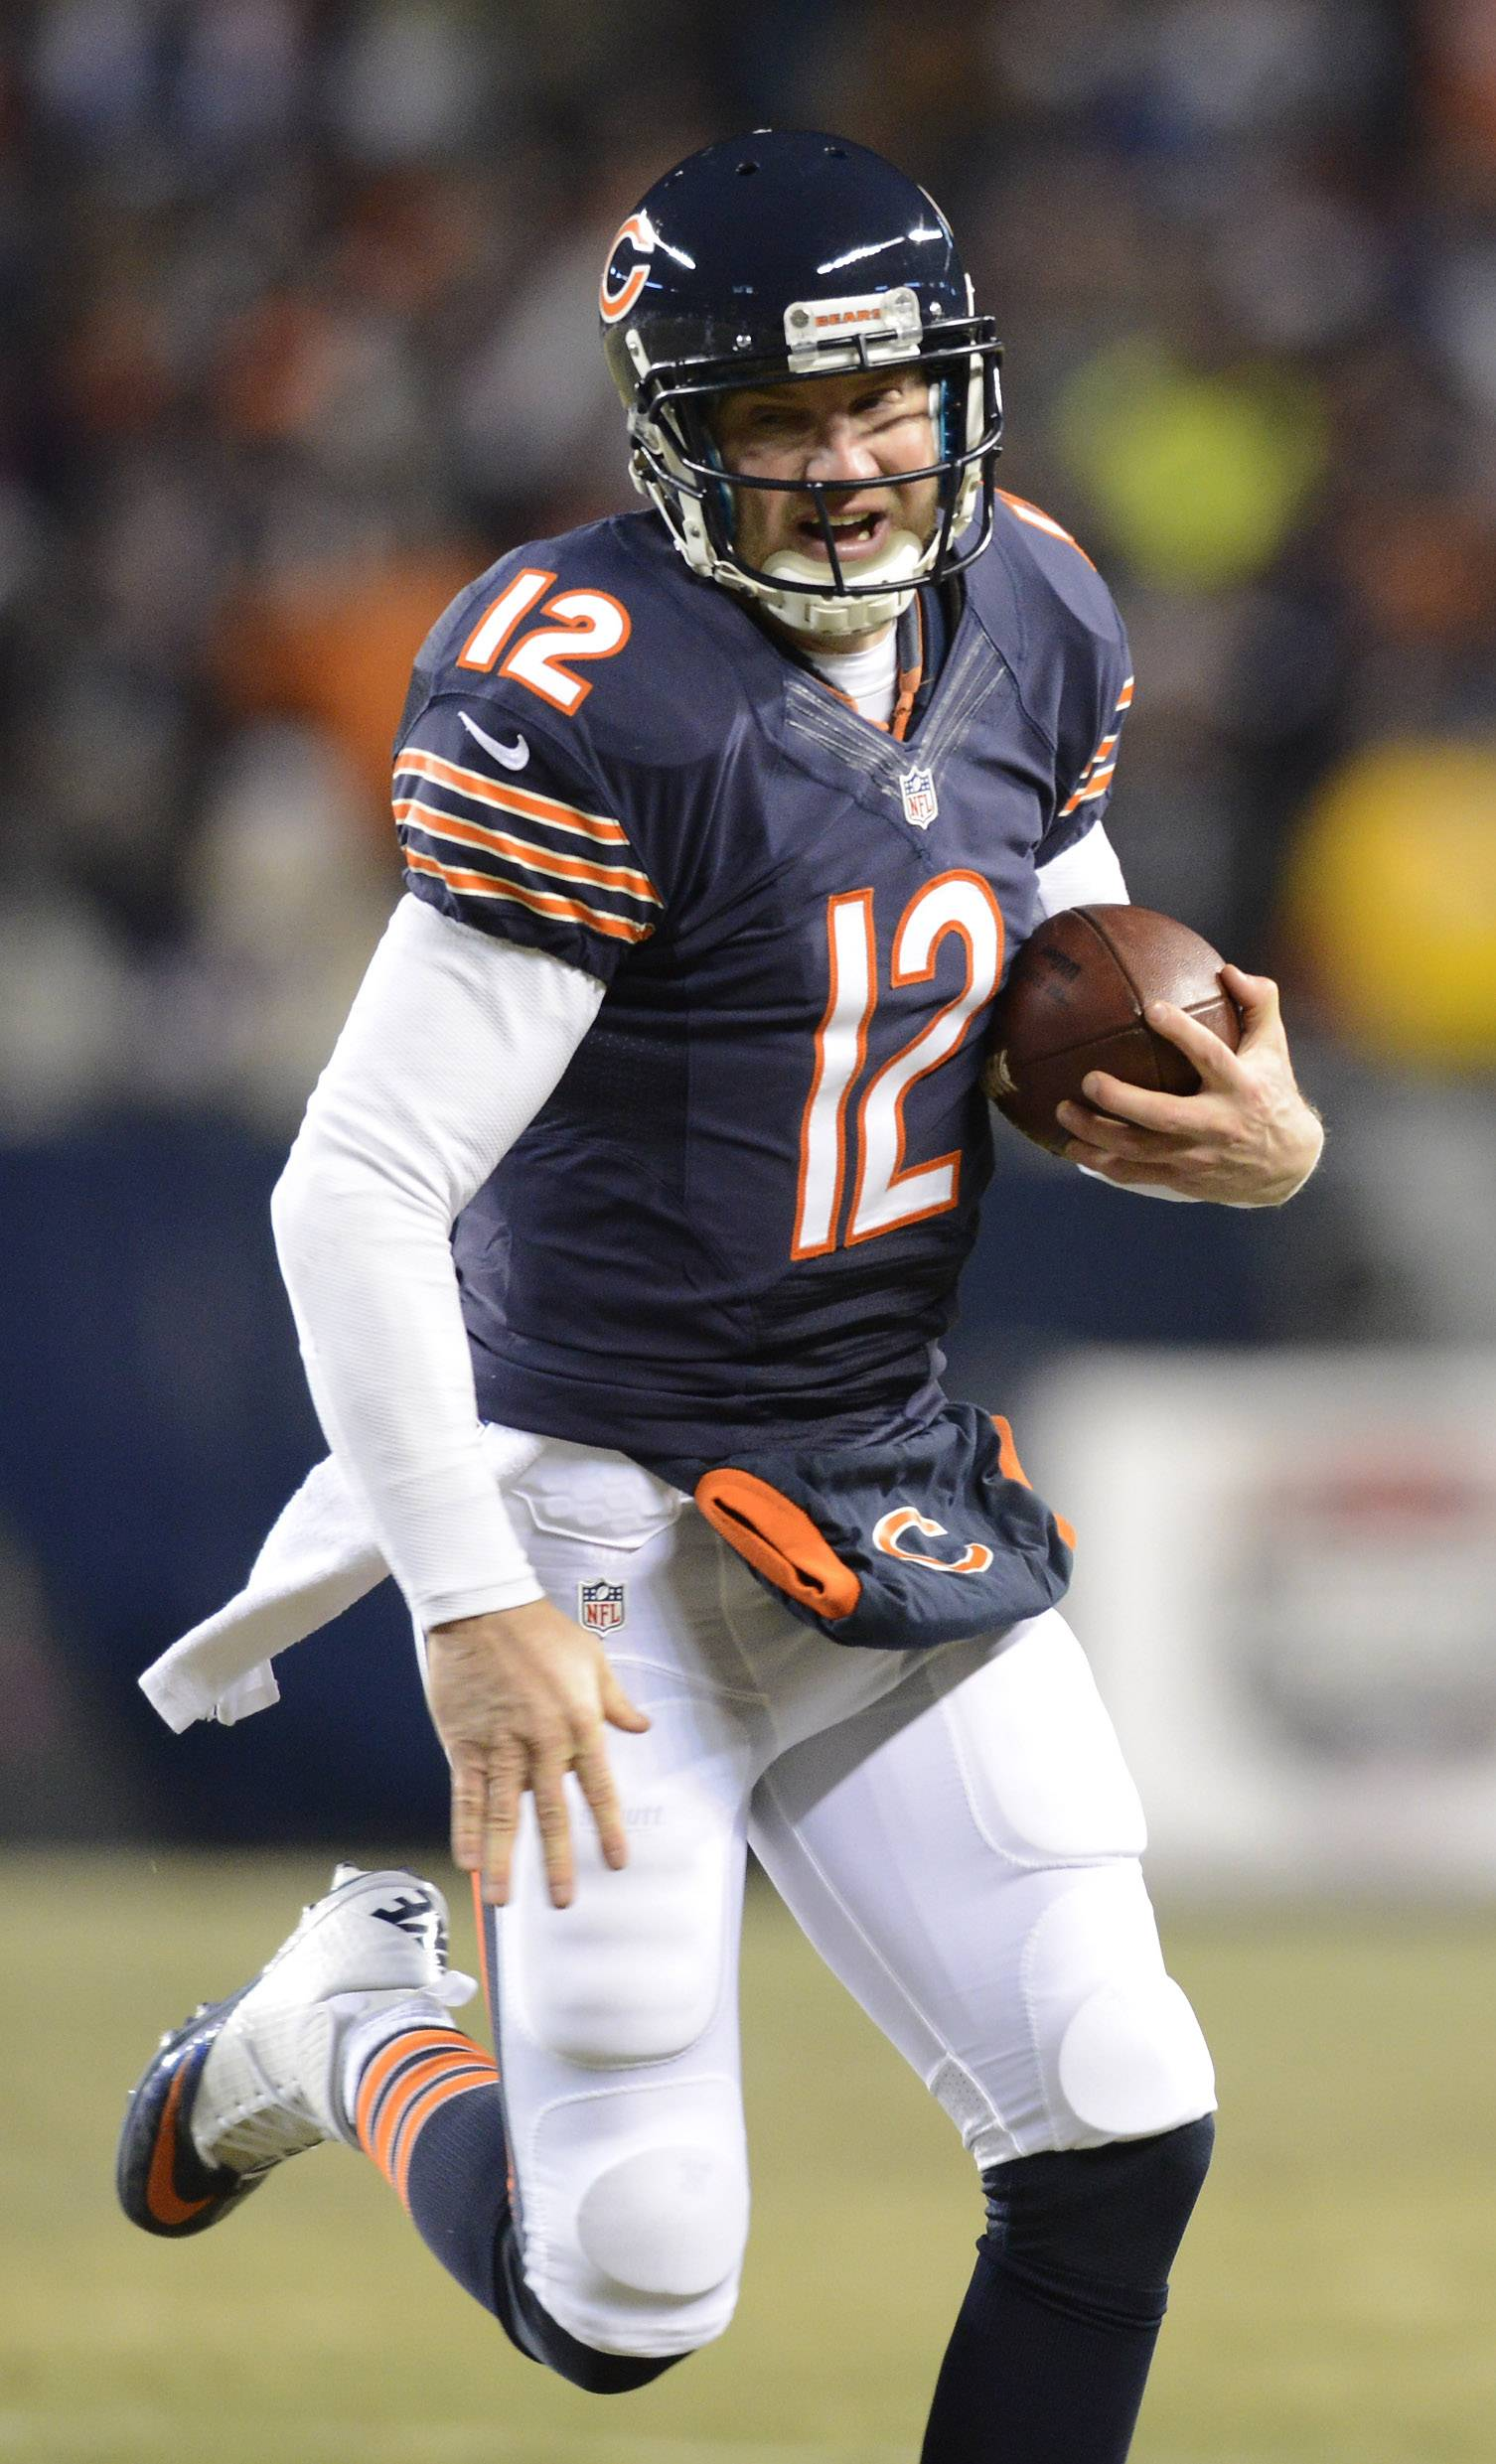 JOE LEWNARD/jlewnard@dailyherald.com ¬ Chicago Bears quarterback Josh McCown carries the ball for a first down during the second quarter at Soldier Field Monday.